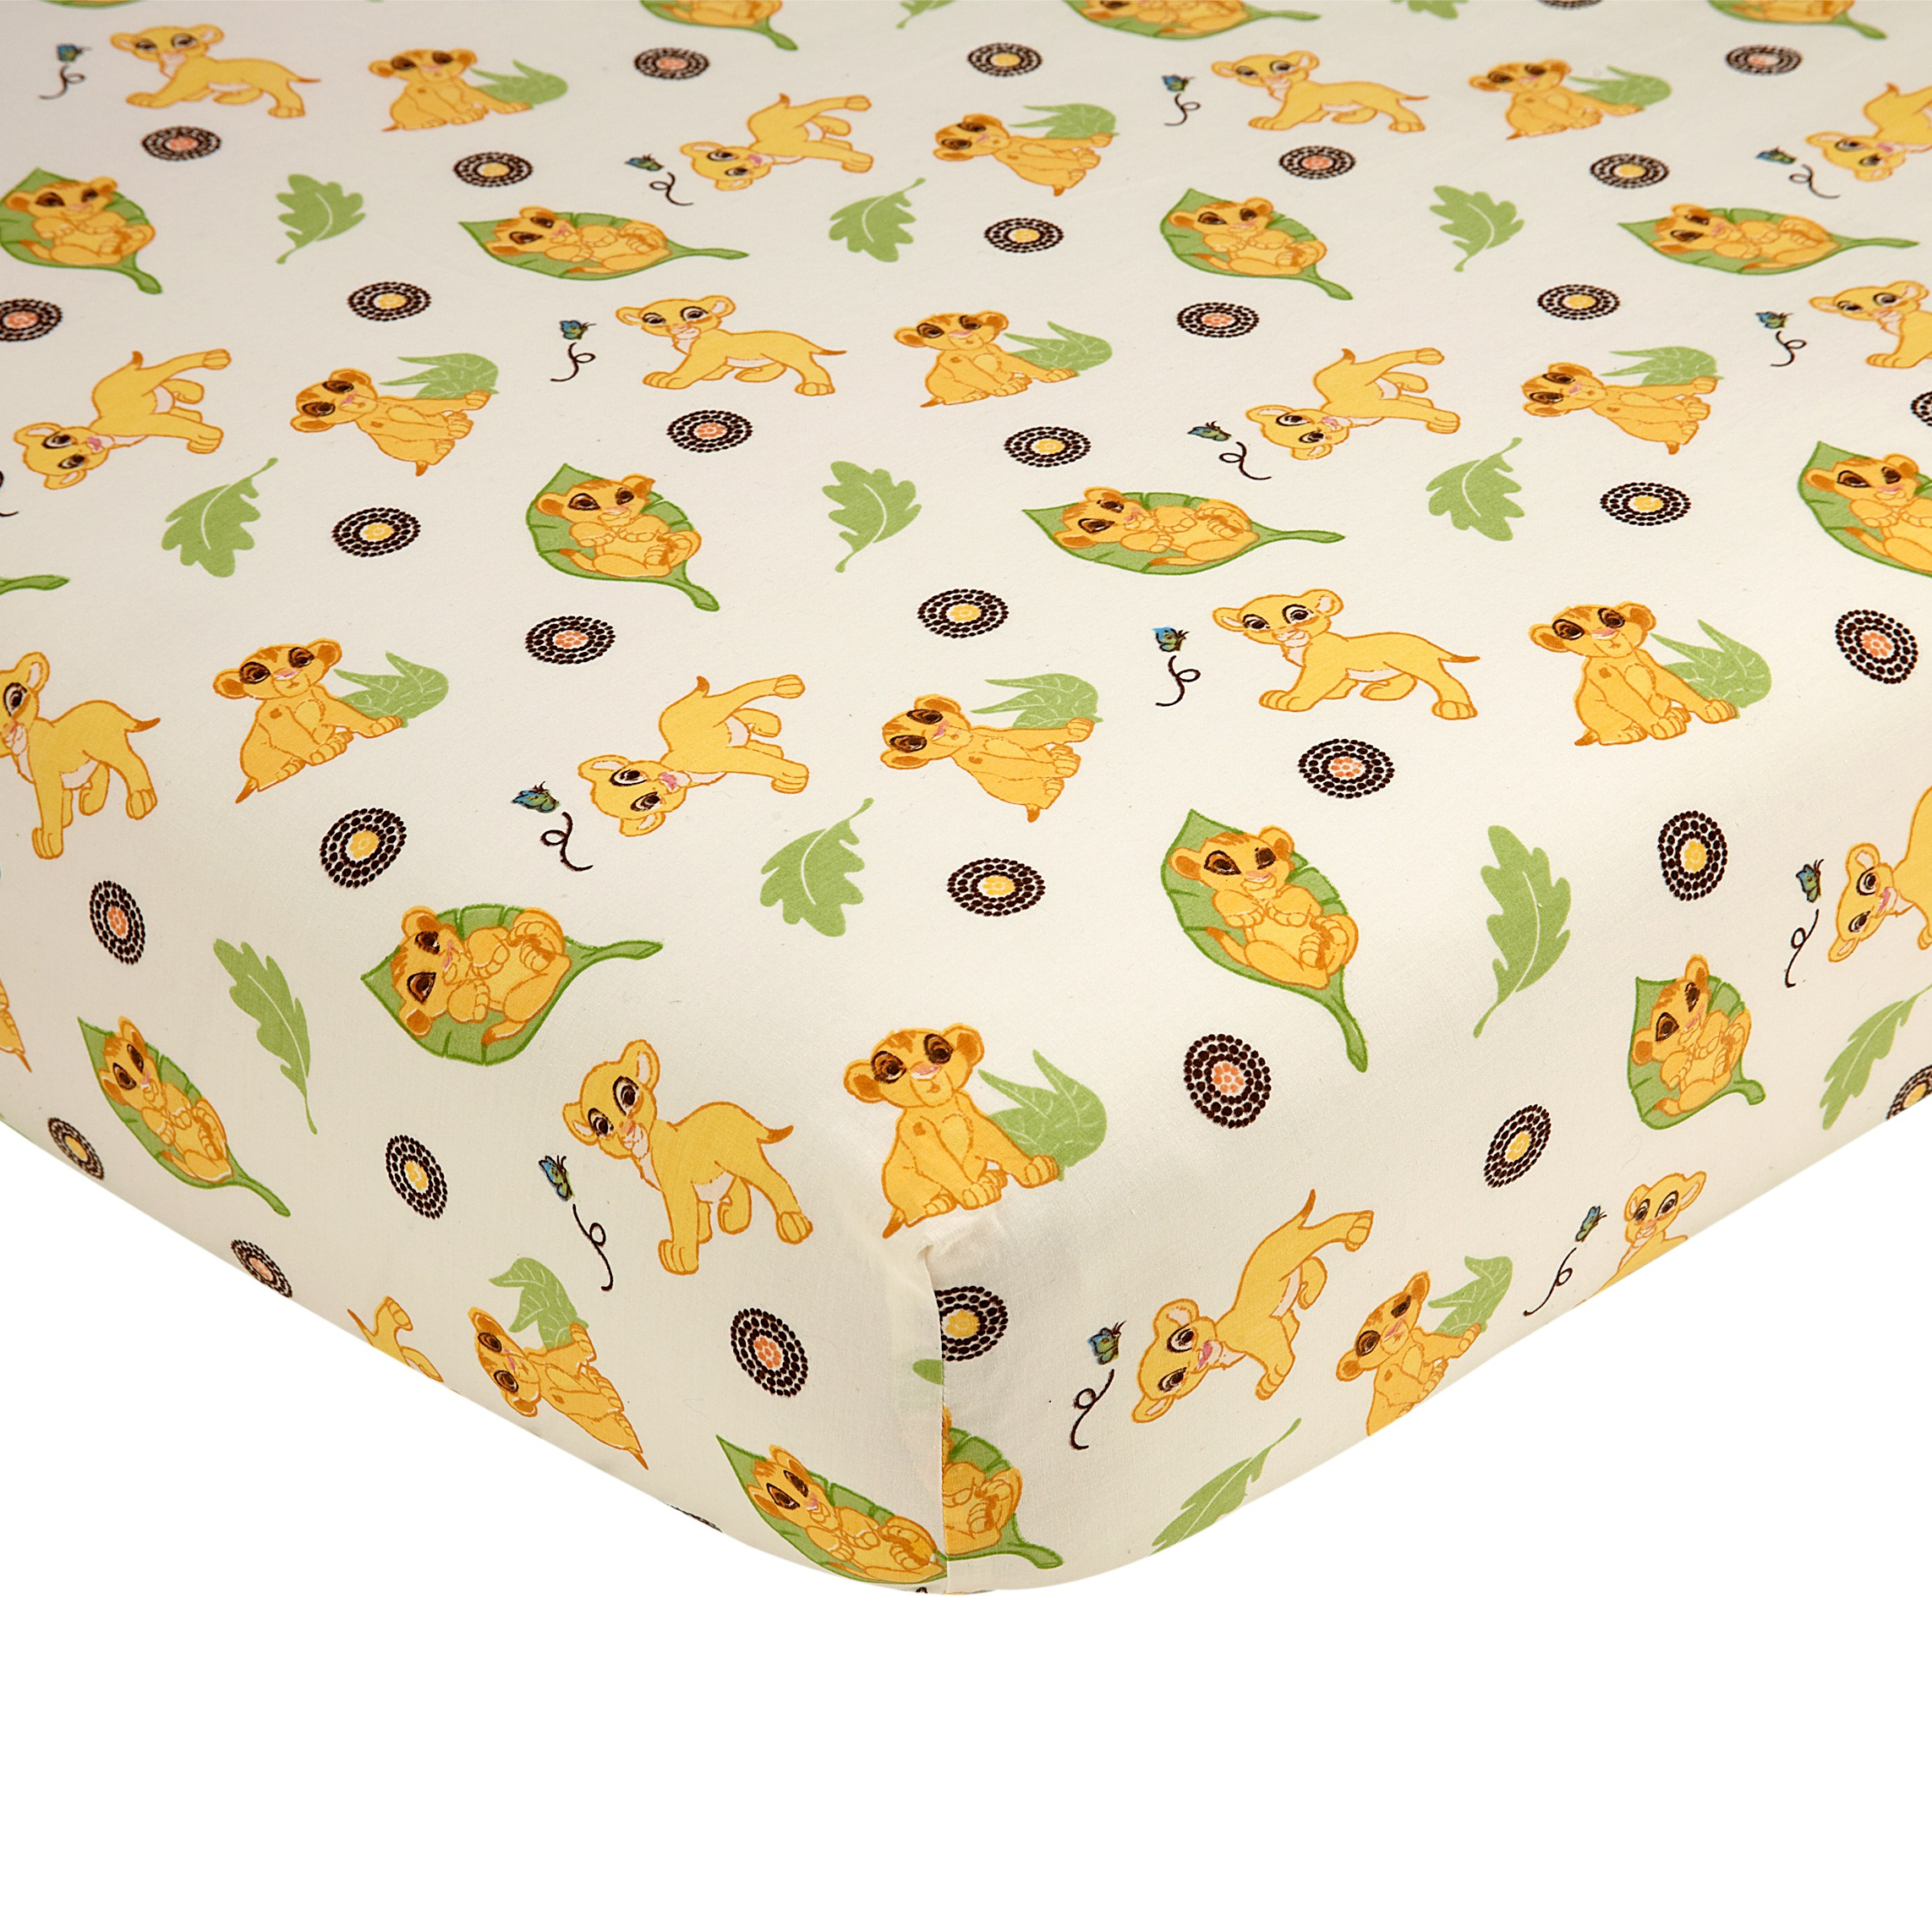 Disney Lion King Simba's Wild Adventure 100% Cotton Fitted Crib Sheet